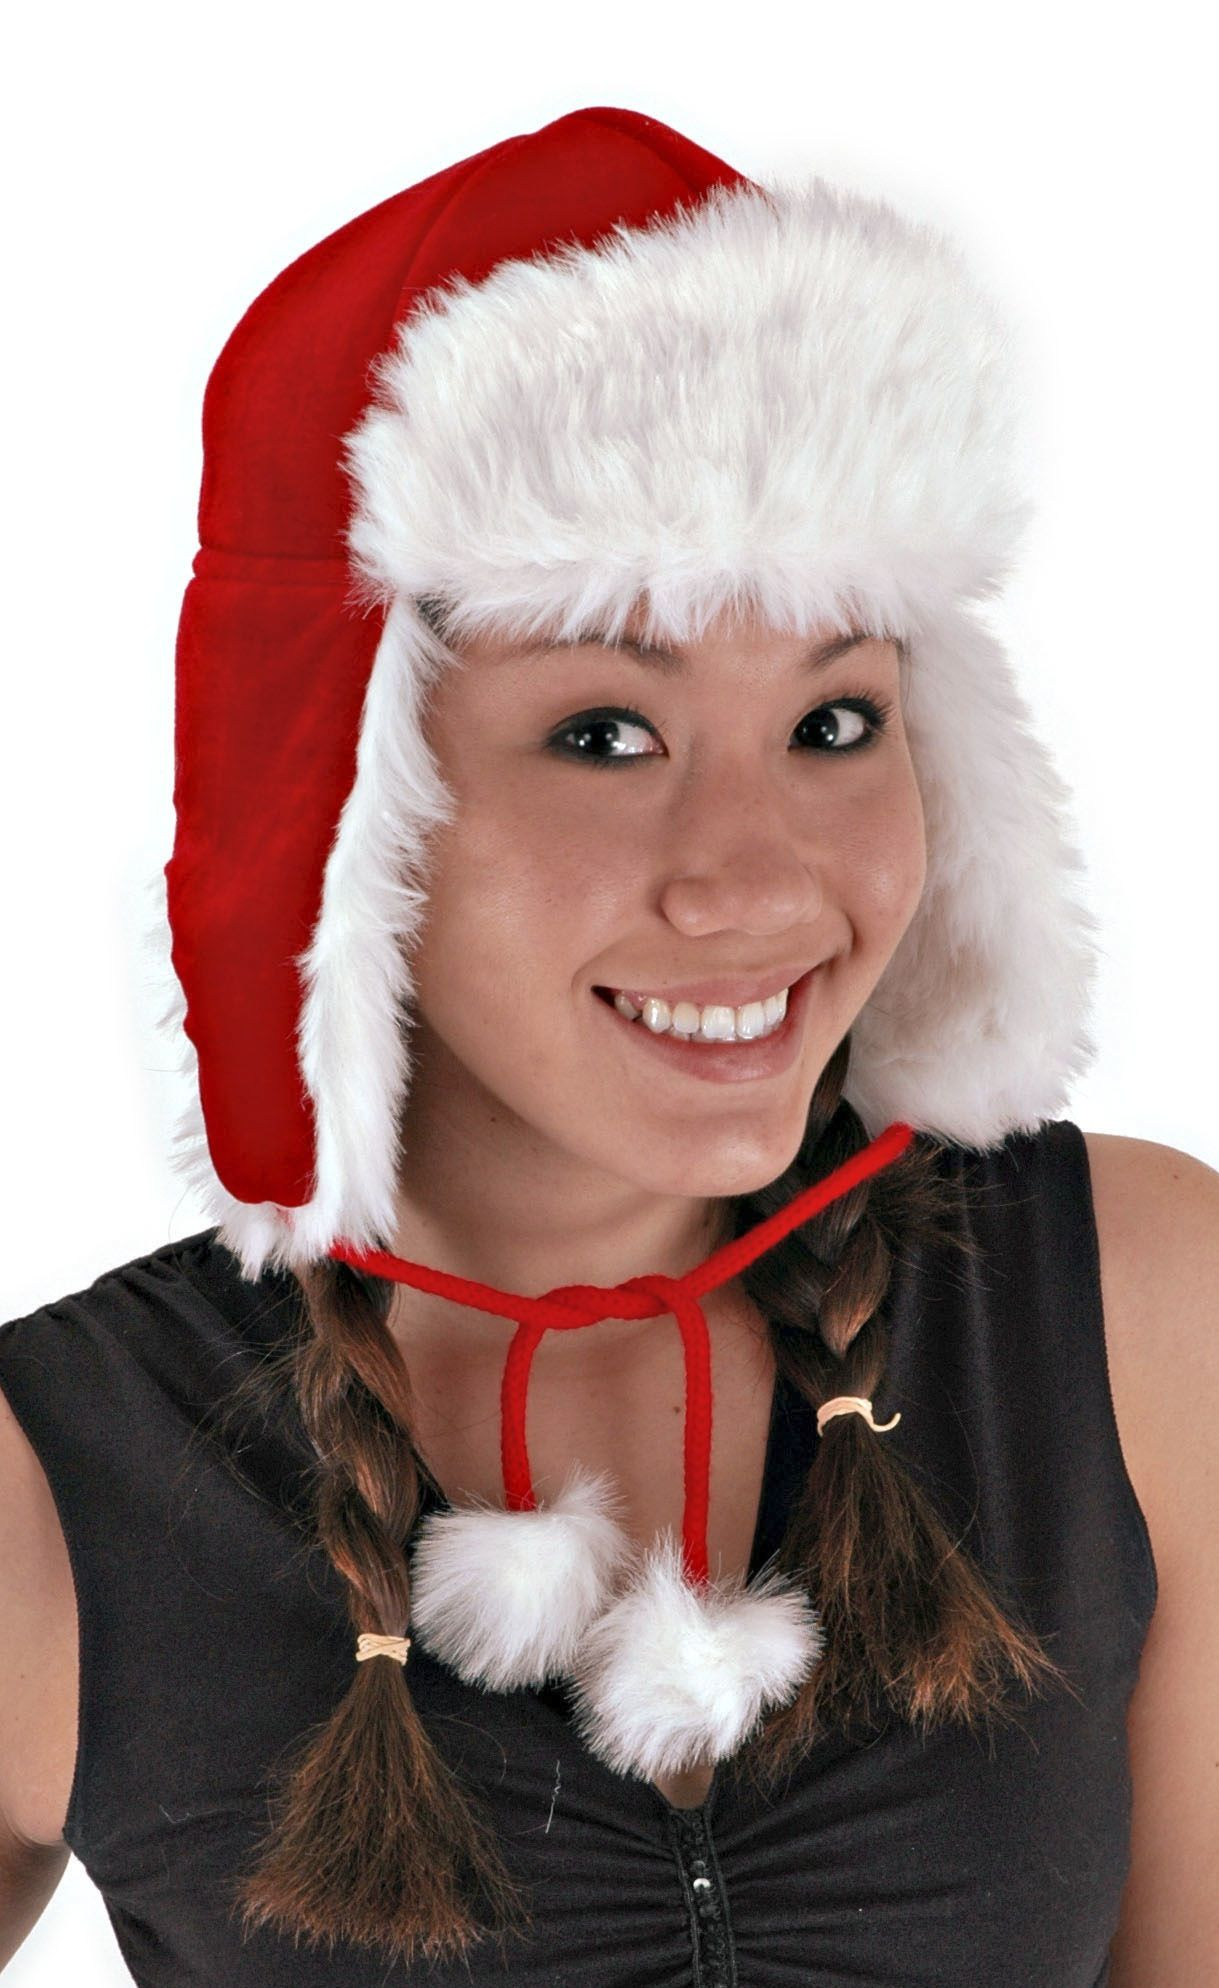 Red Santa Aviator Hat  Christmas  Pinterest  Aviator hat and Santa